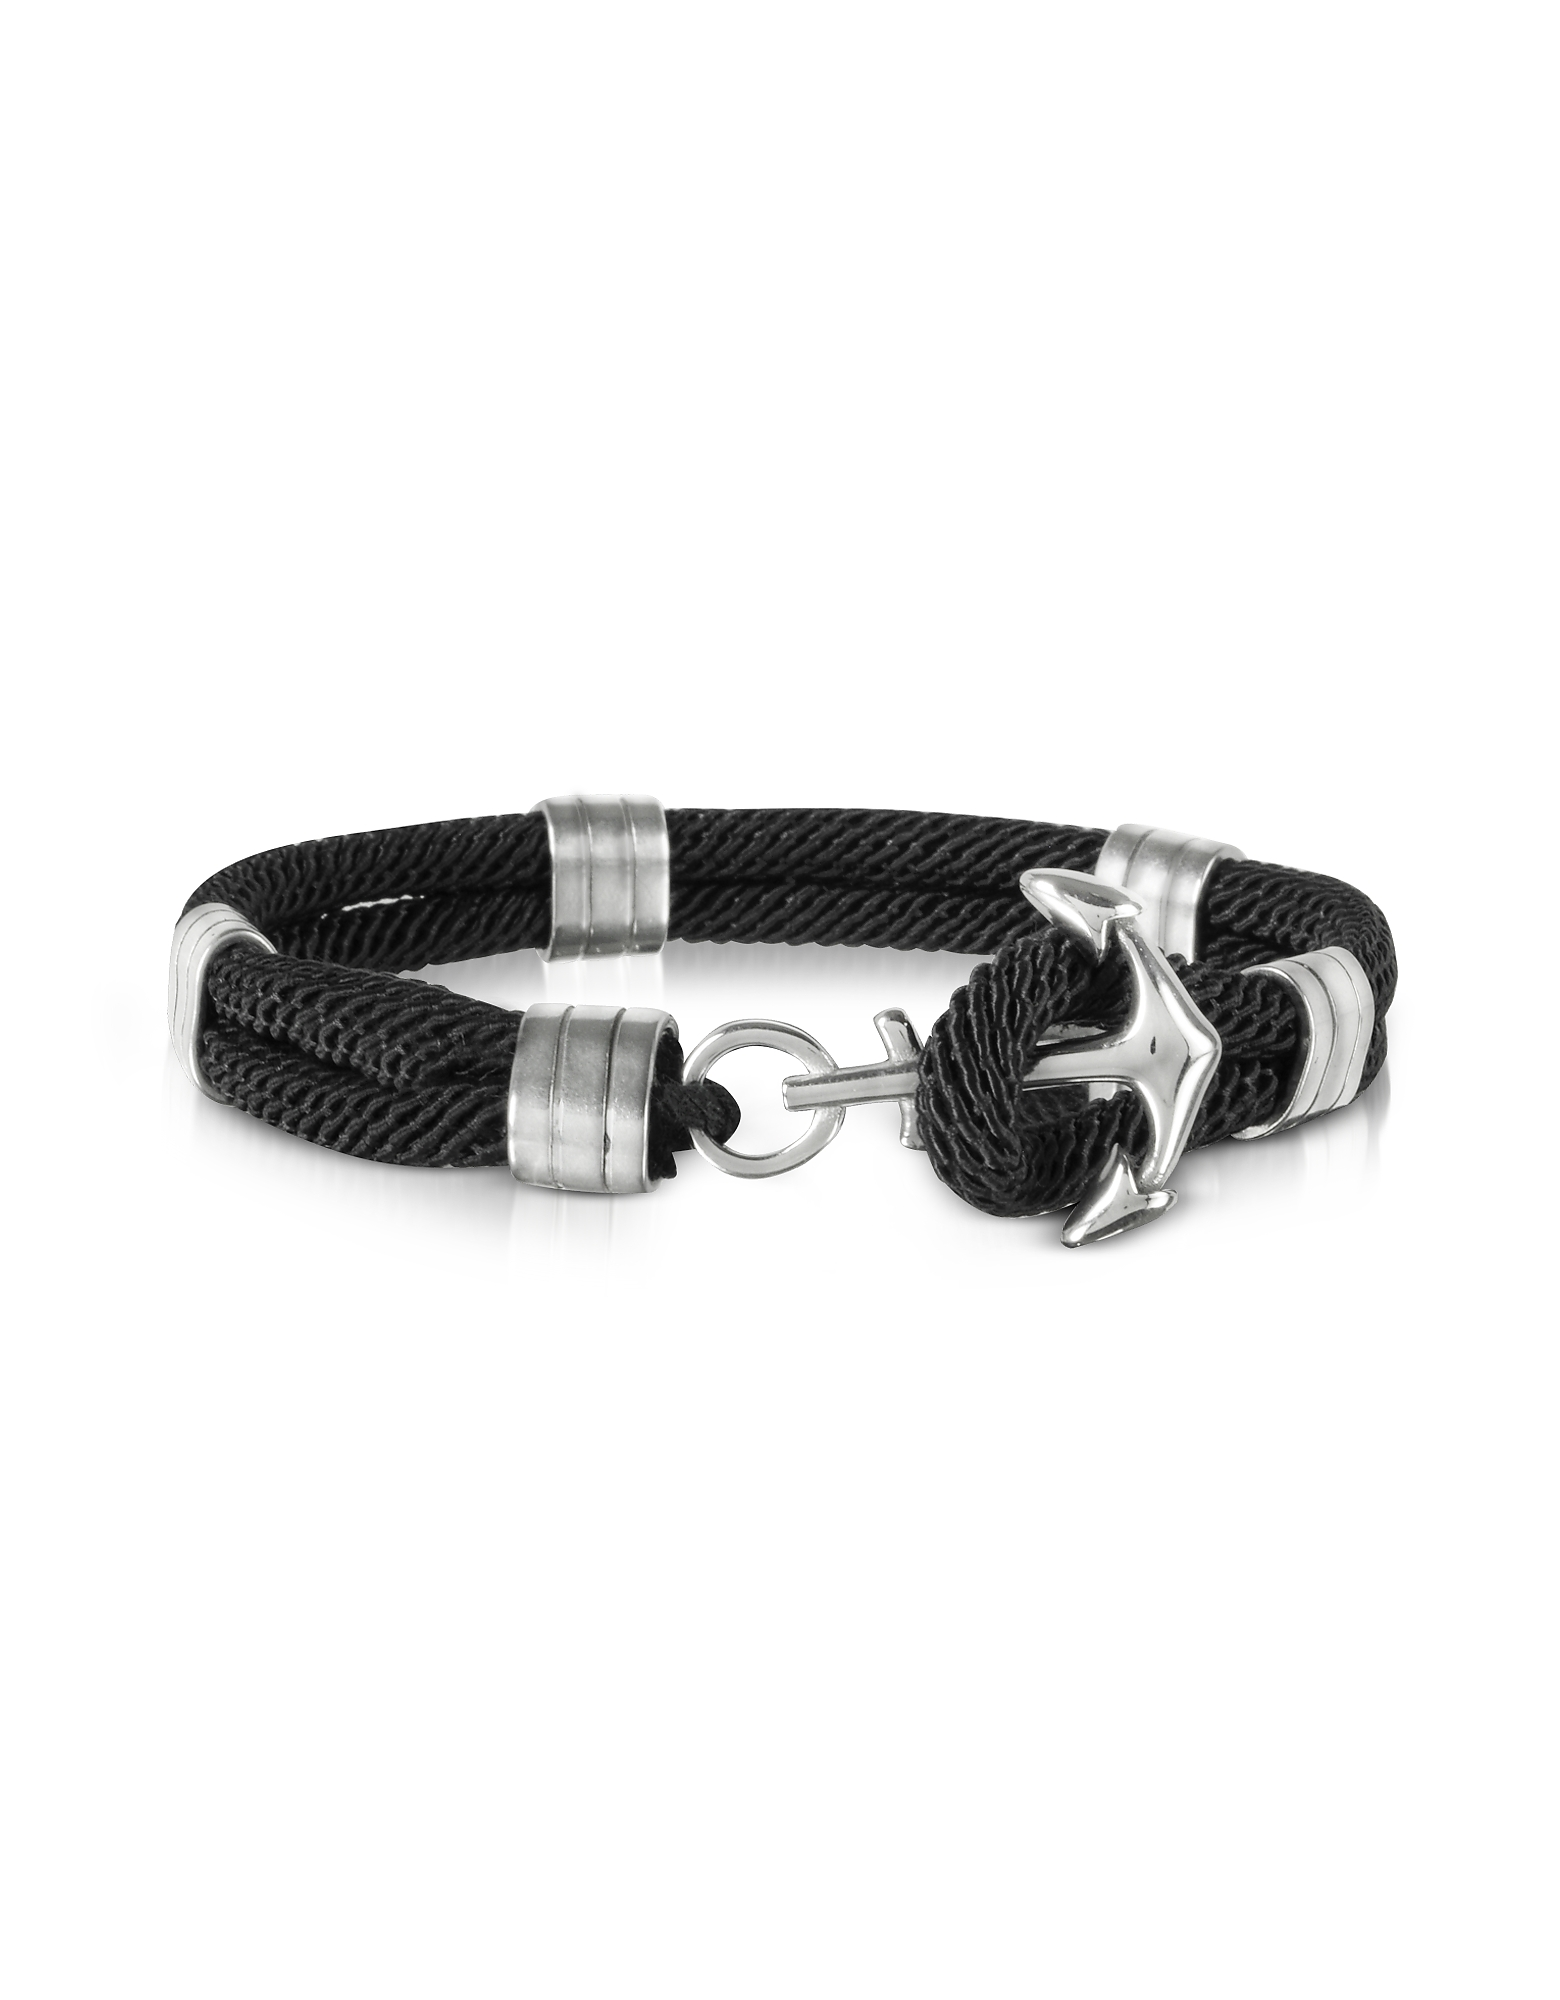 Forzieri Men's Bracelets, Black Nautical Rope Double Bracelet w/Anchor